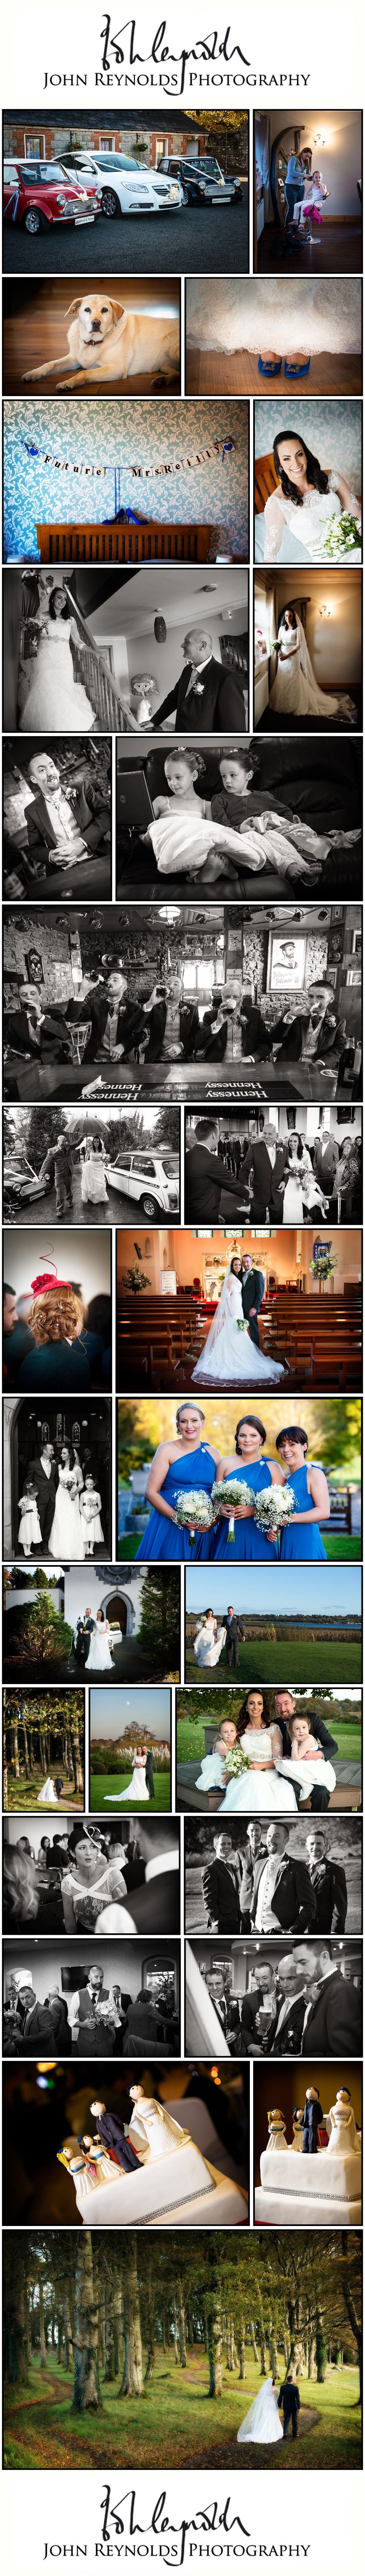 Blog Collage-Meriel & Tom2